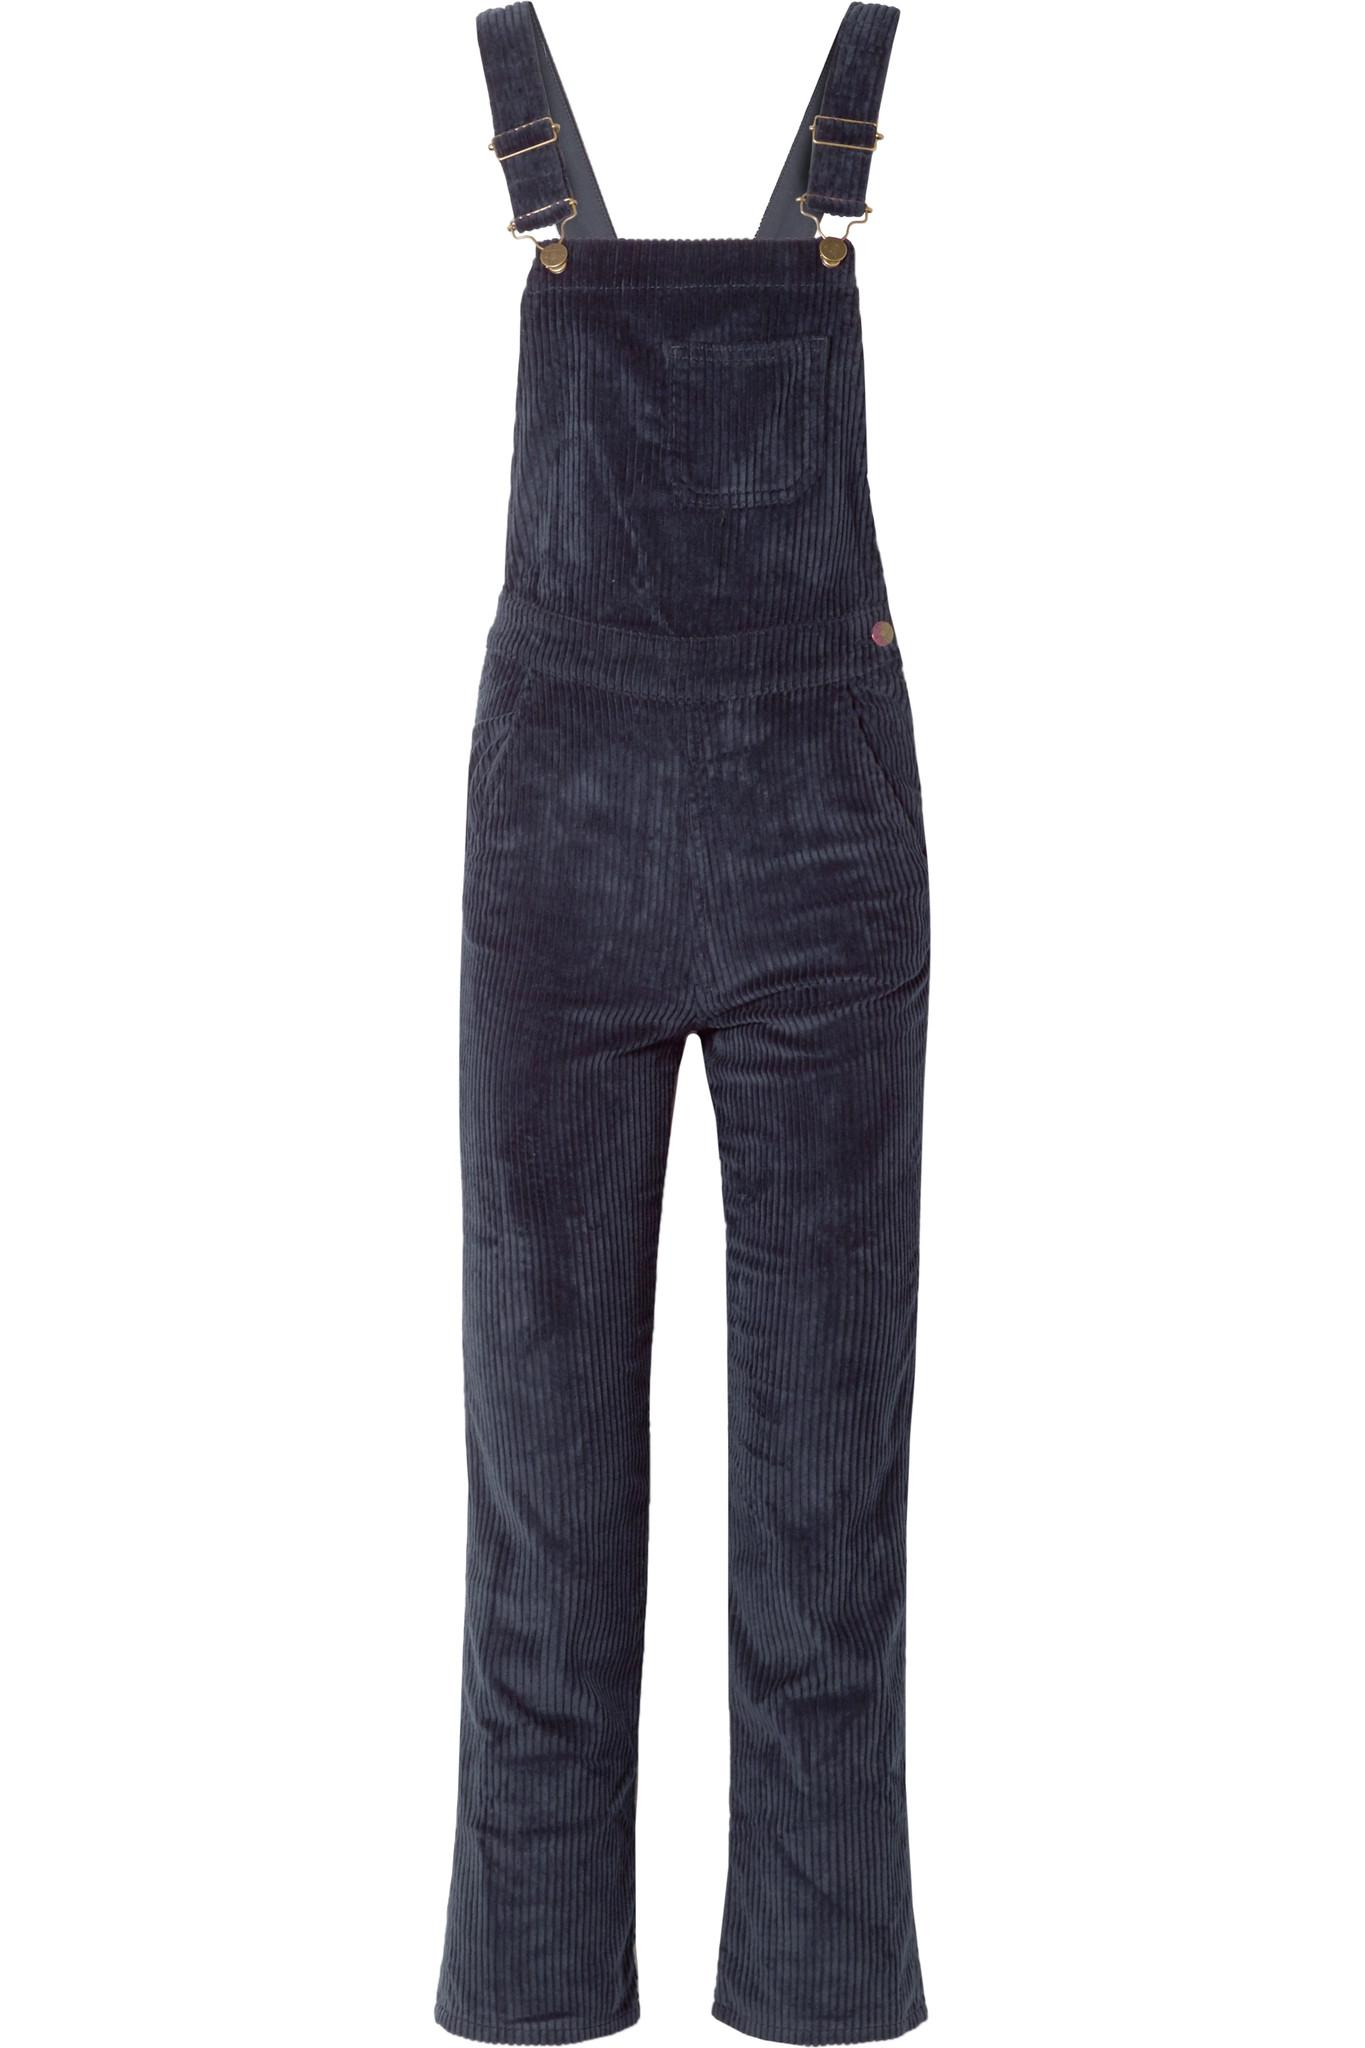 6c02f4ac557 Mih Jeans Korine Cotton-blend Corduroy Overalls in Blue - Lyst